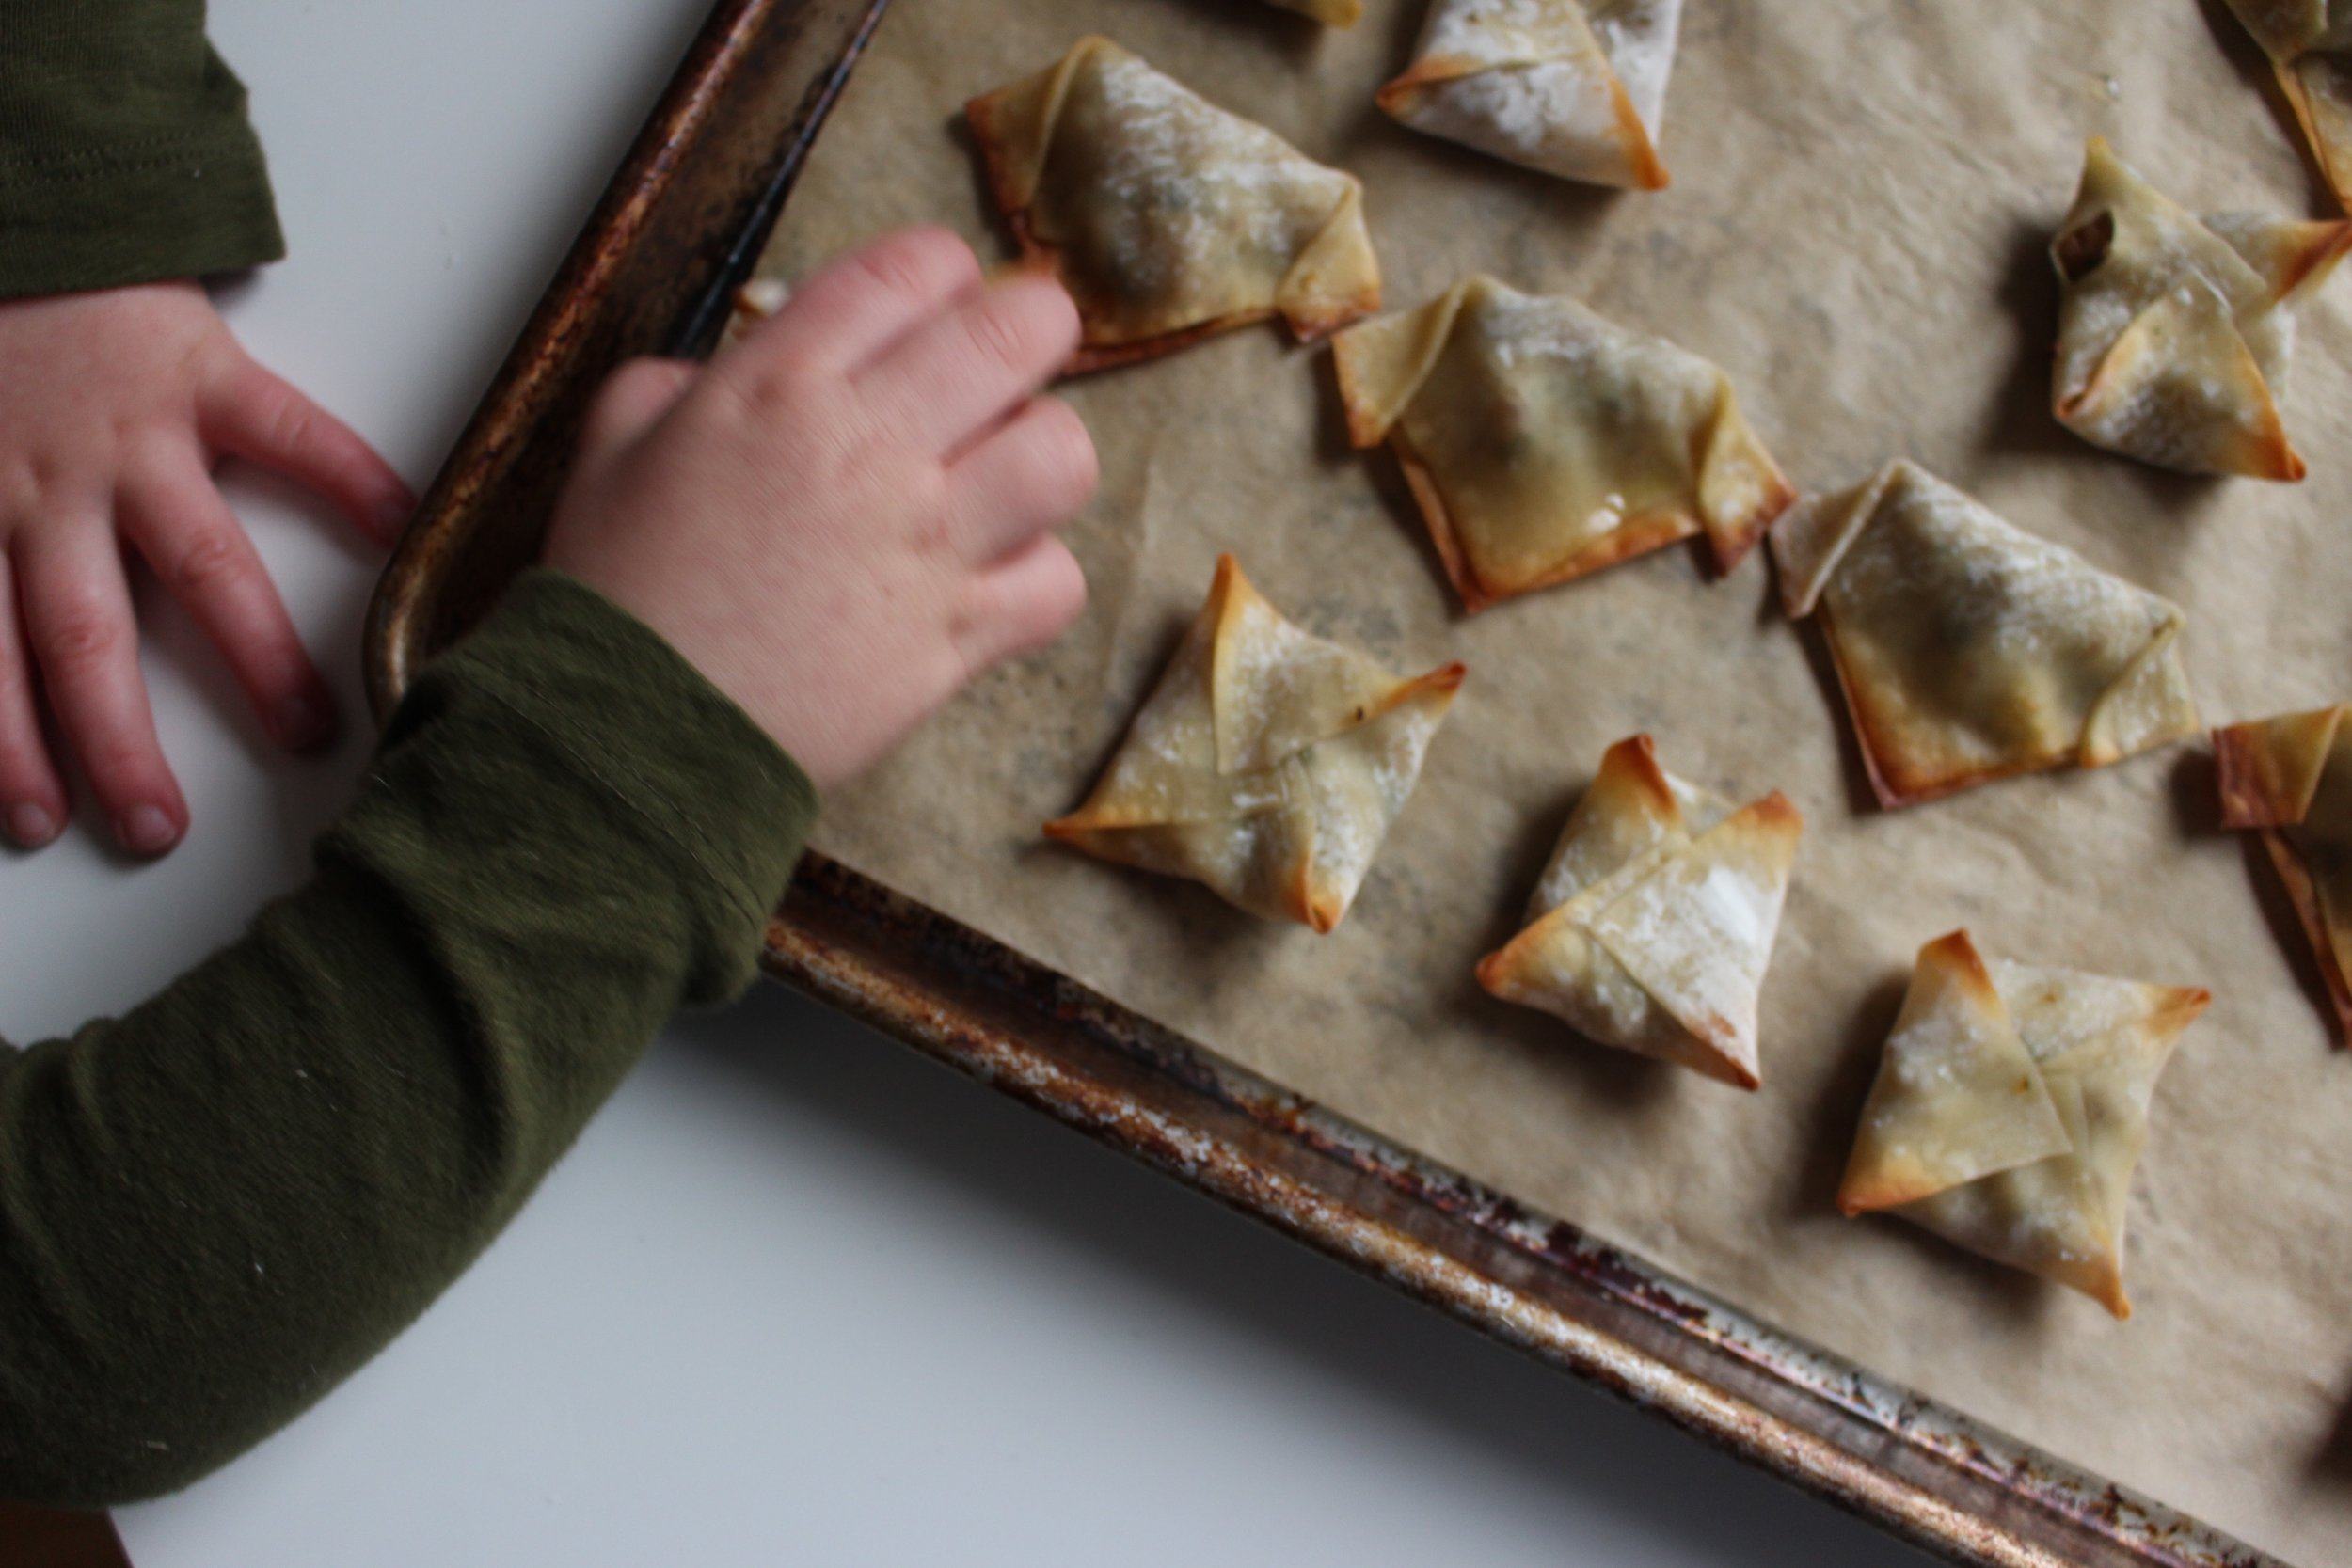 Turkey dumplings | Me & the Moose. Precooked filling speeds up the process of making these dumplings that are a fun vehicle for veggies and protein for lunchboxes, snacks, and dinners. #meandthemoose #dumplings #turkey #luncboxinspo #lunchboxideas #kidscooking #kidsrecipes #healthykidrecipes